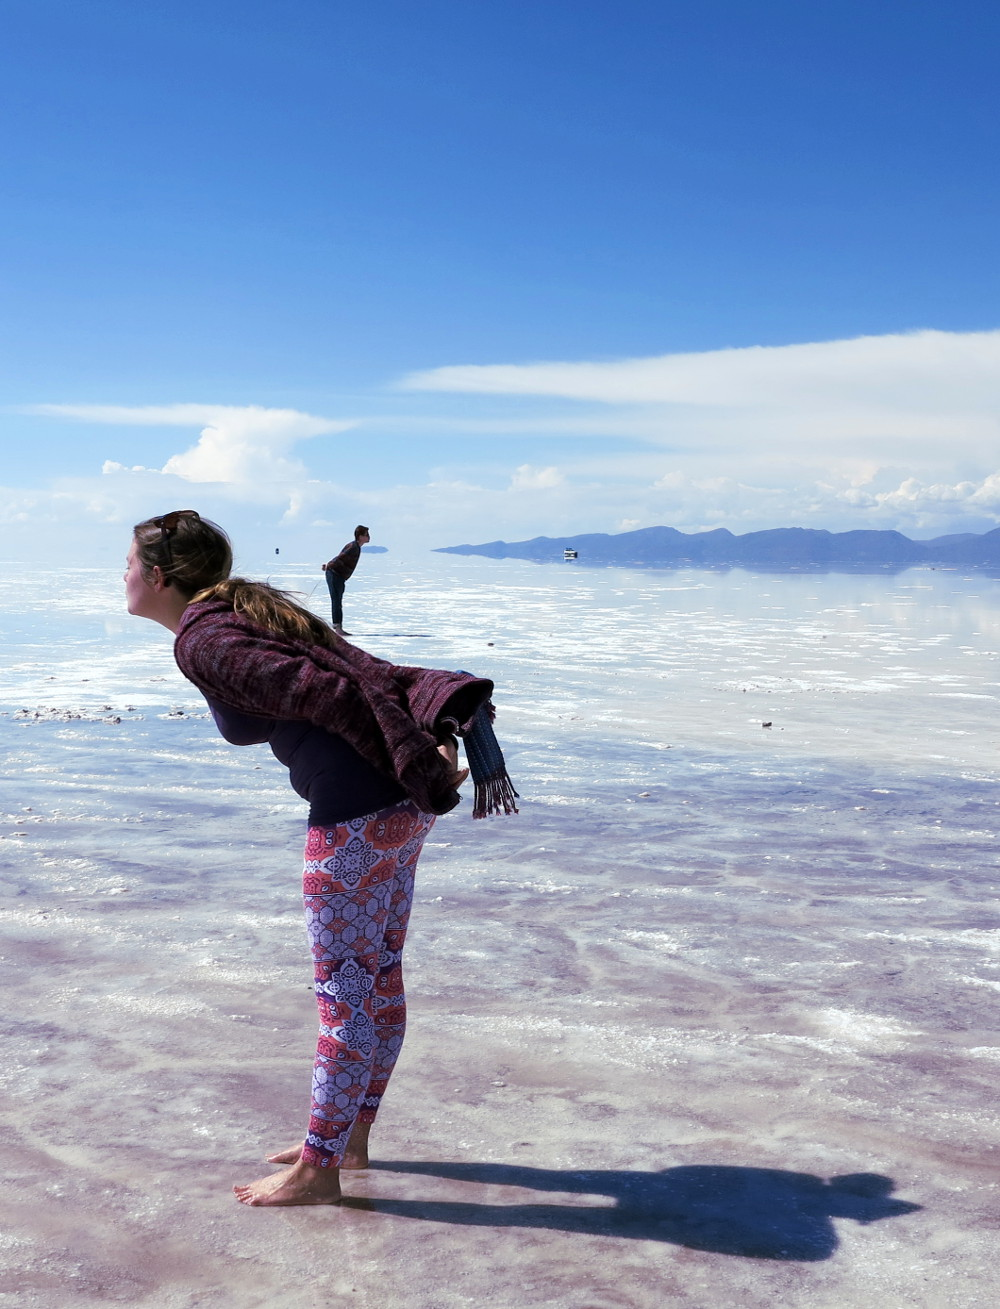 Carmen and Dave3 salt flats Bolivia Double-Barrelled Travel